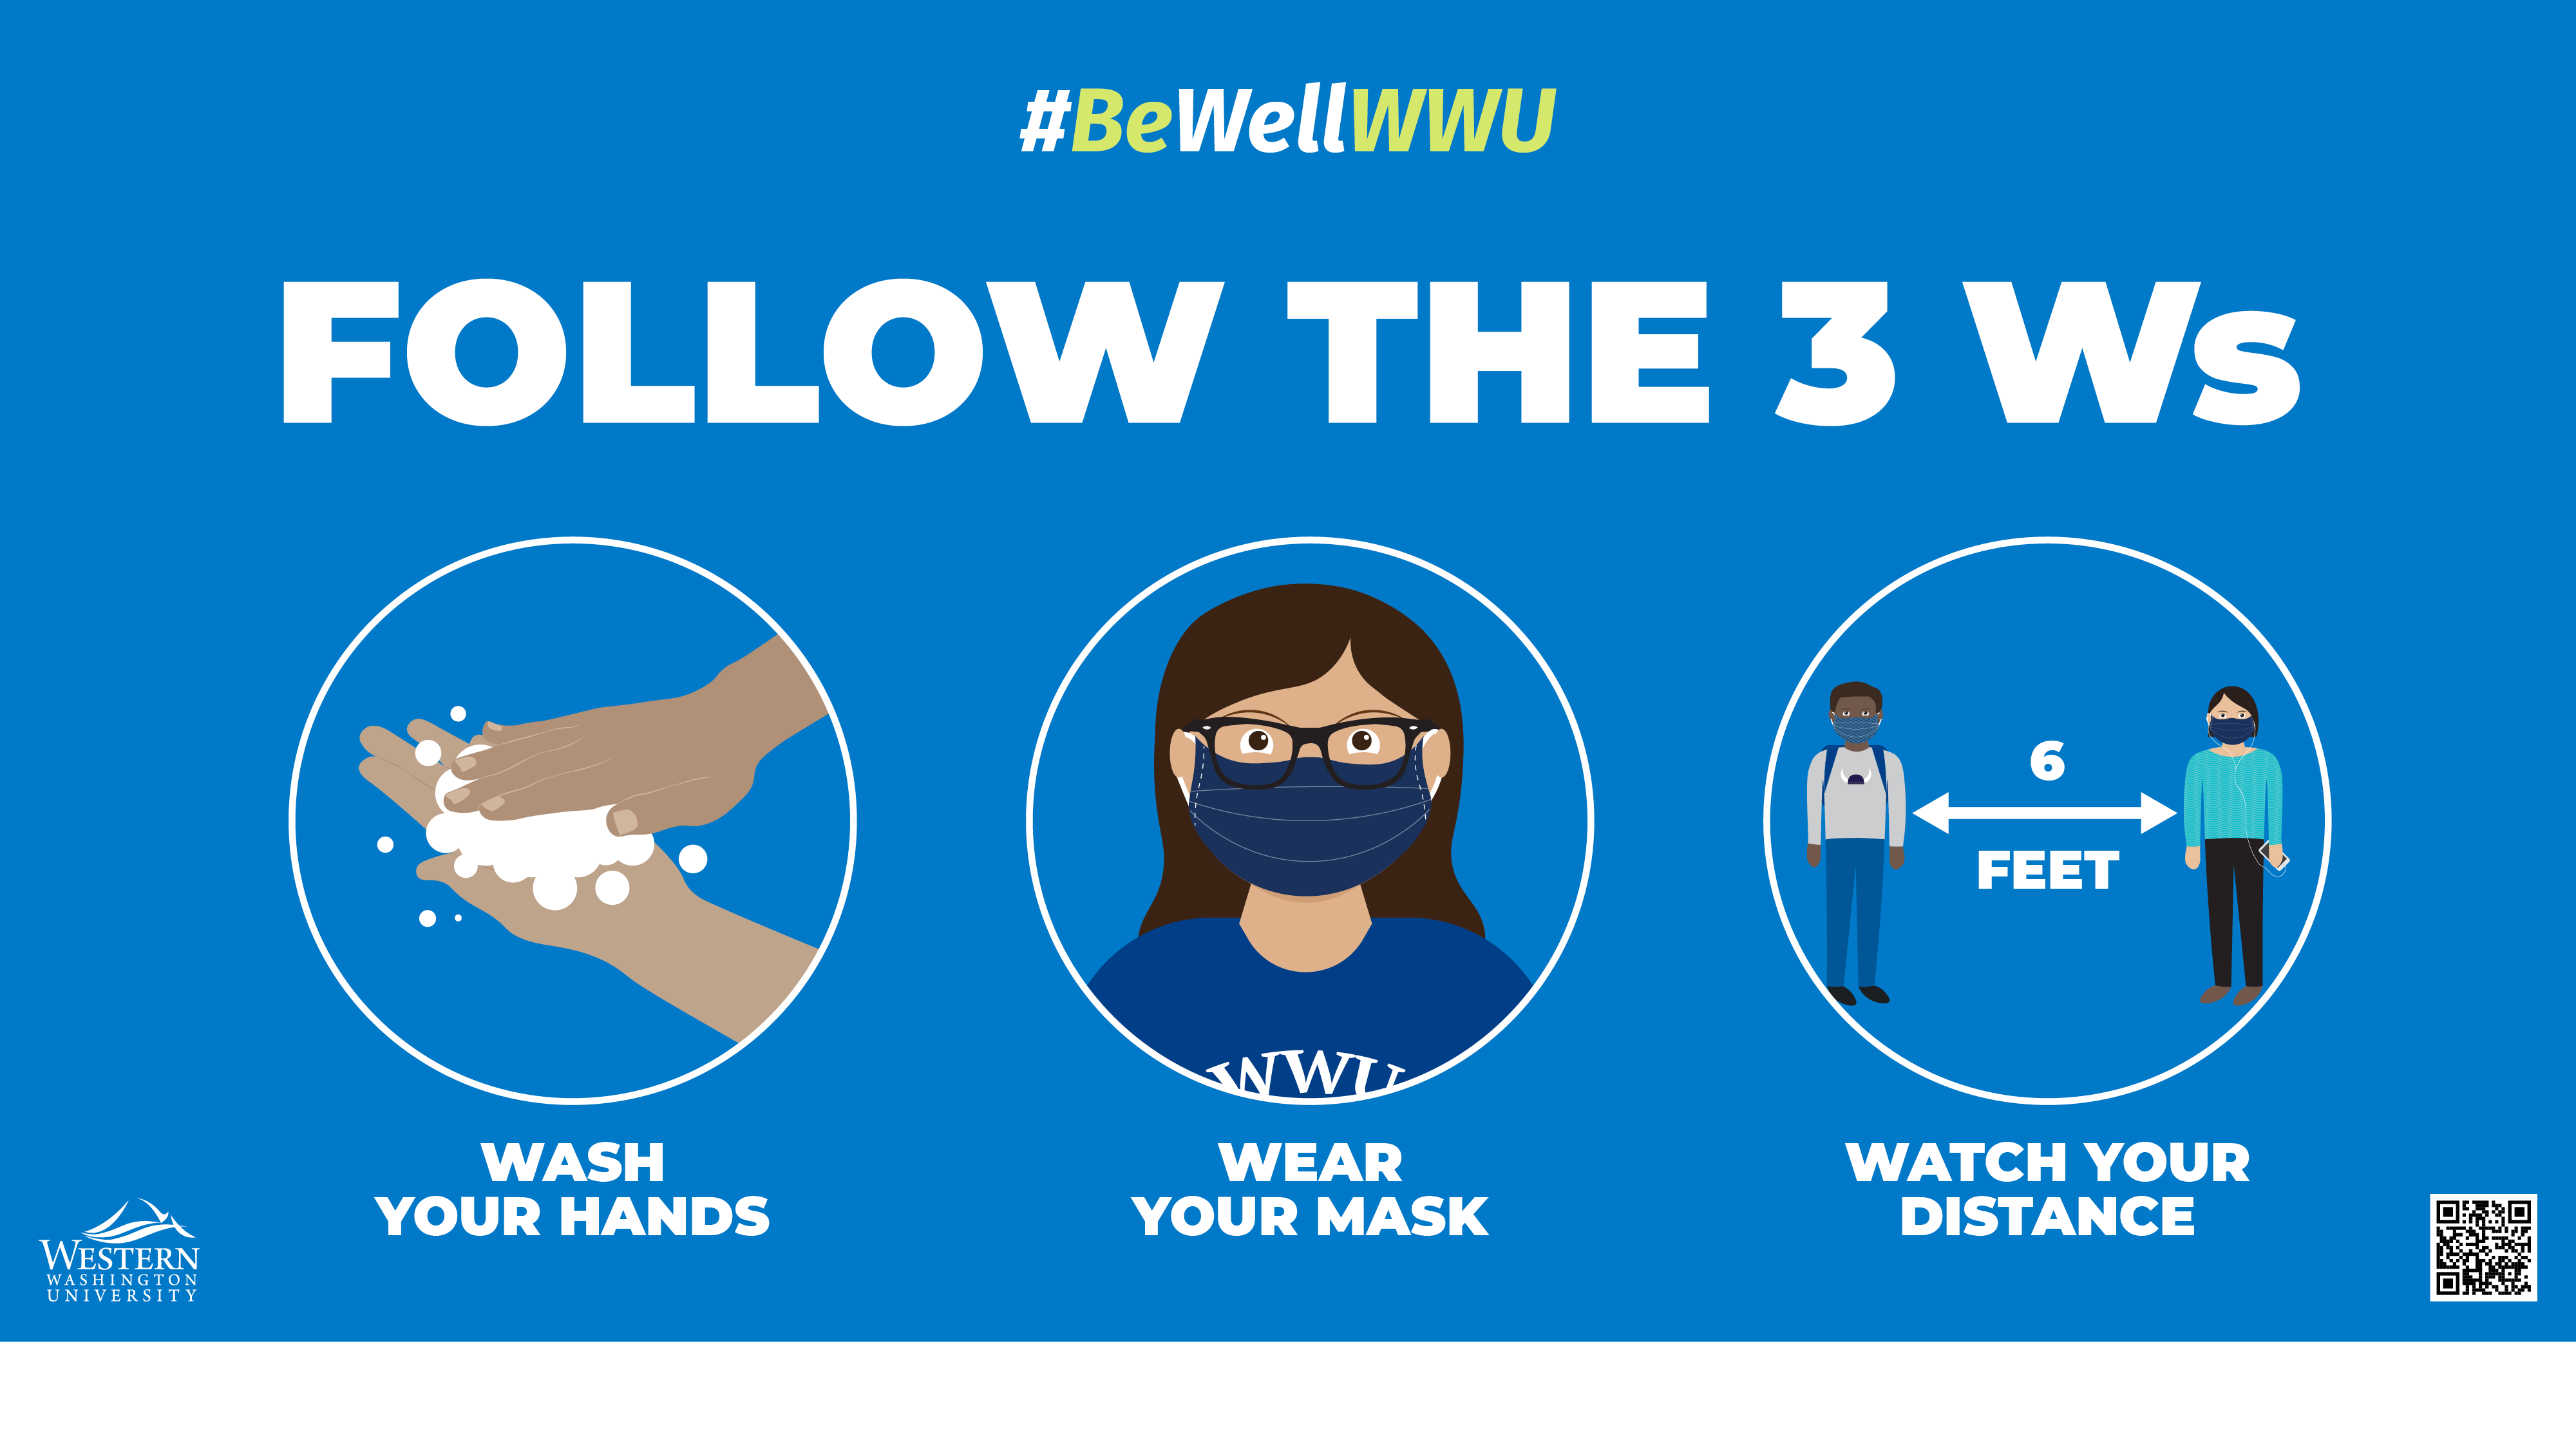 Follow the 3Ws - wash your hands, wear your mask and watch your distance infographic